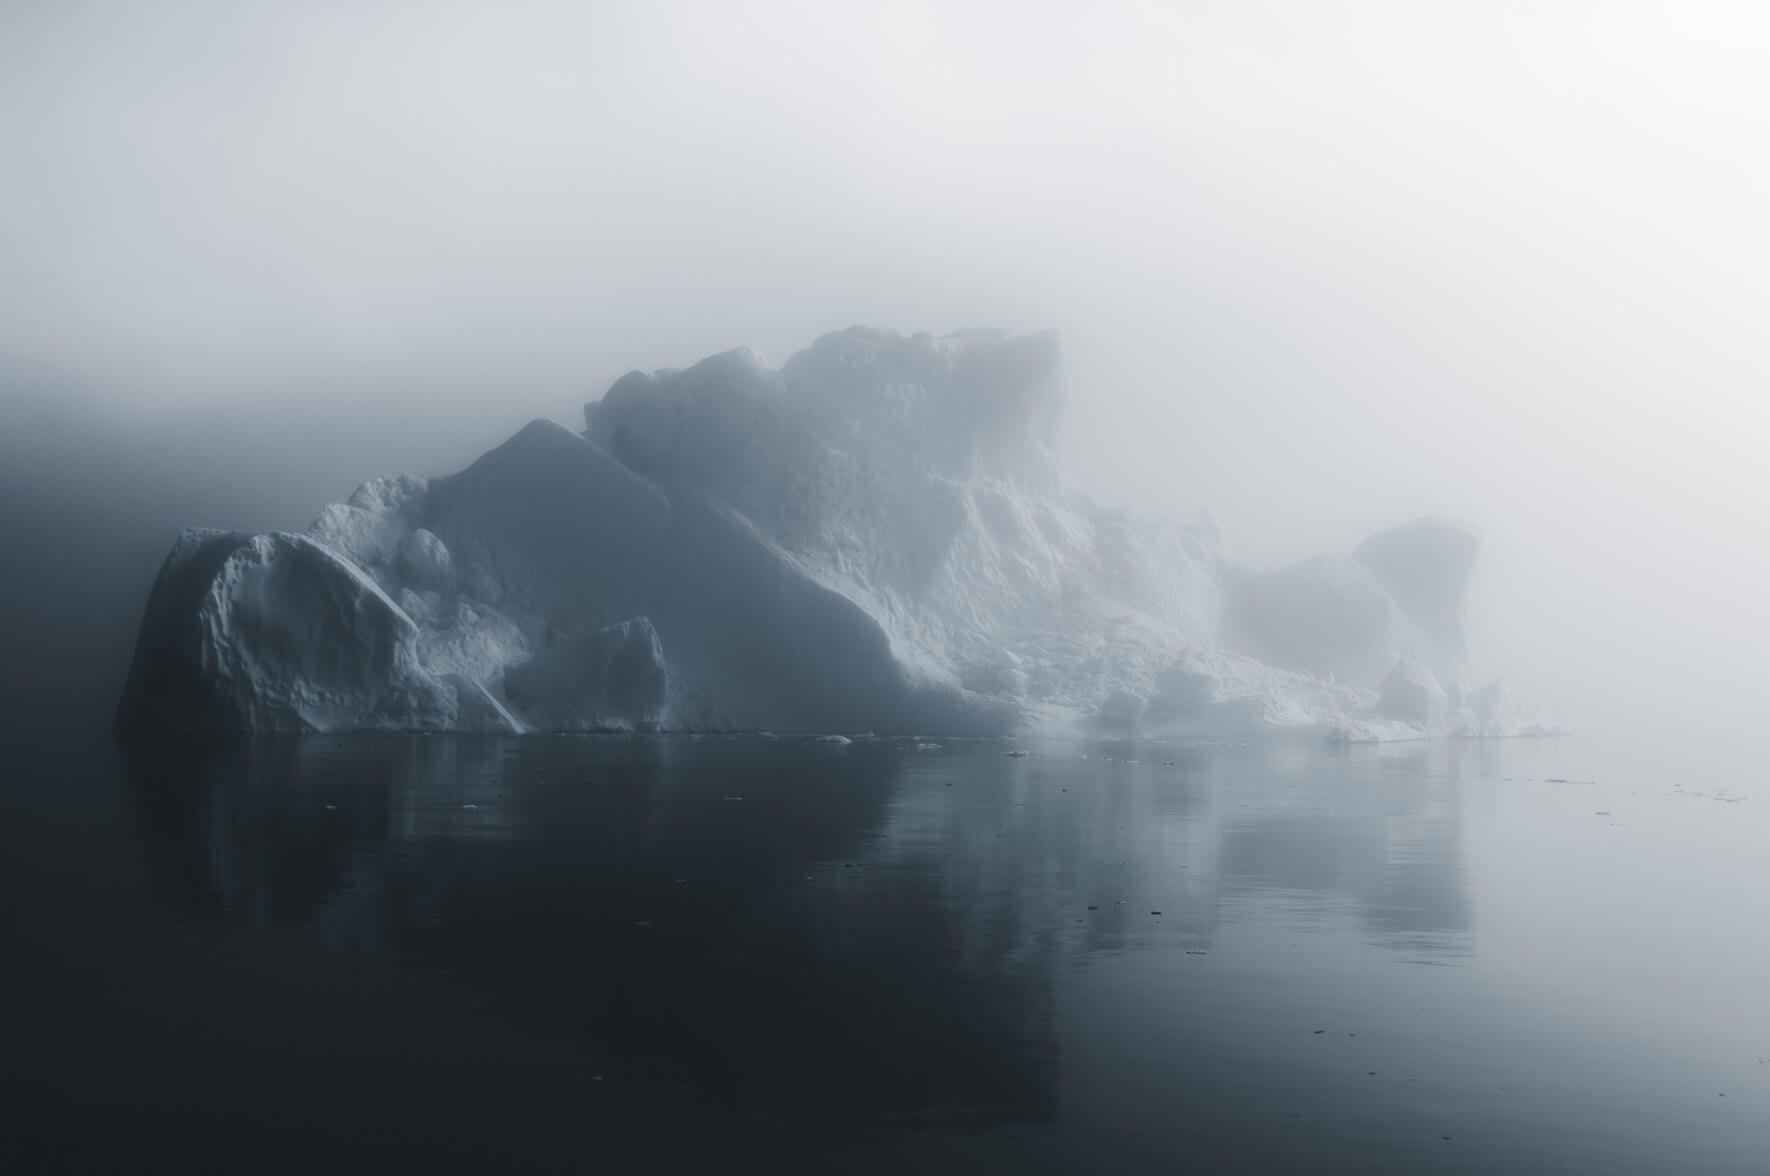 Arctic seascape with iceberg in fog (Disko Bay, Greenland)